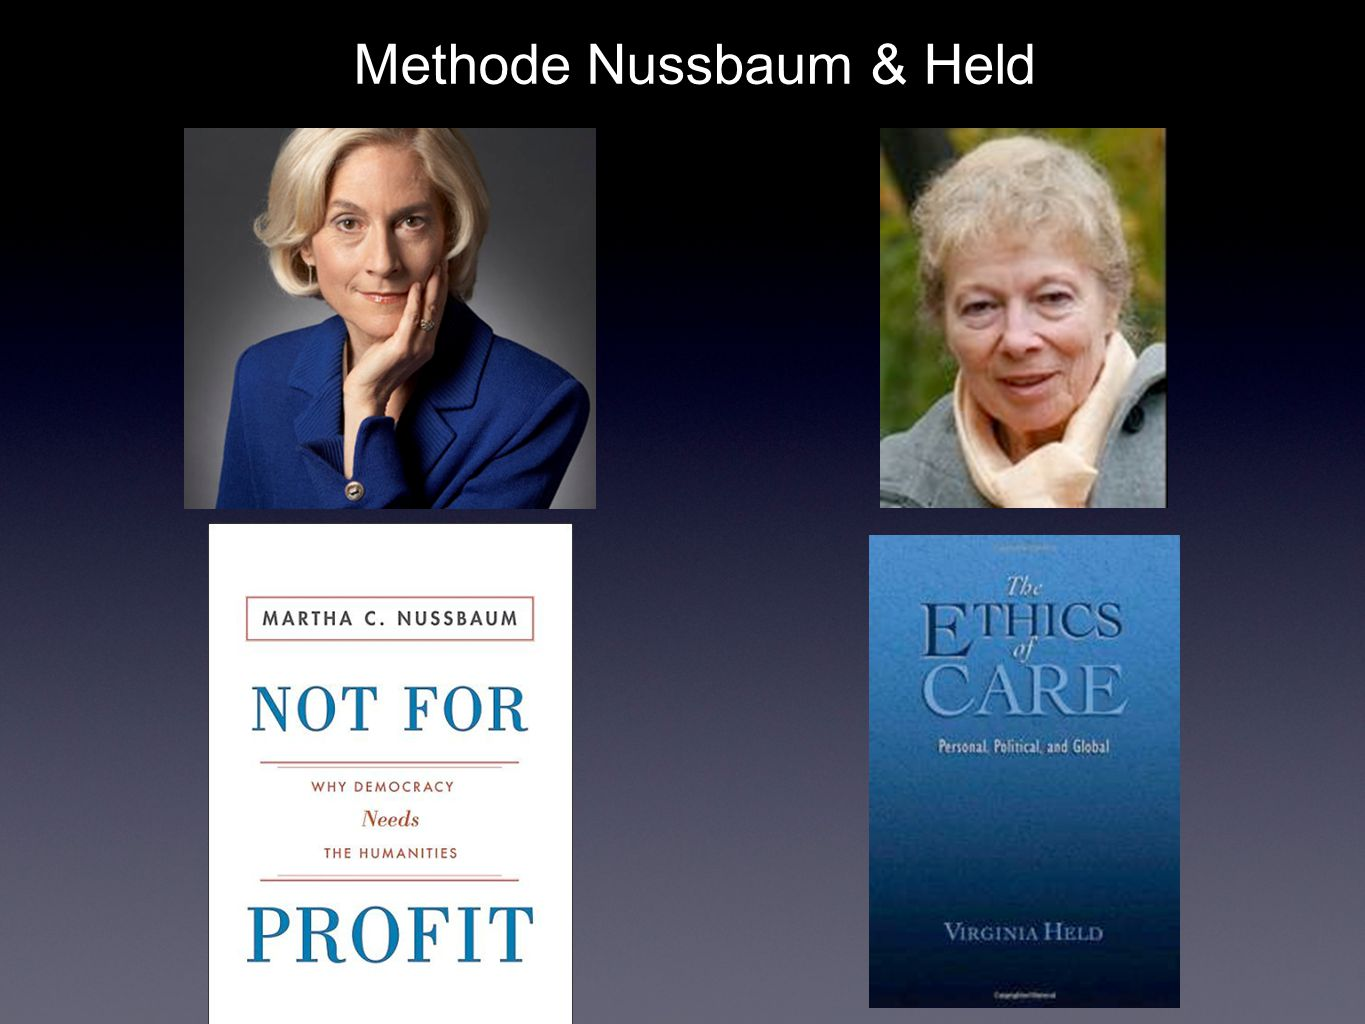 Methode Nussbaum & Held